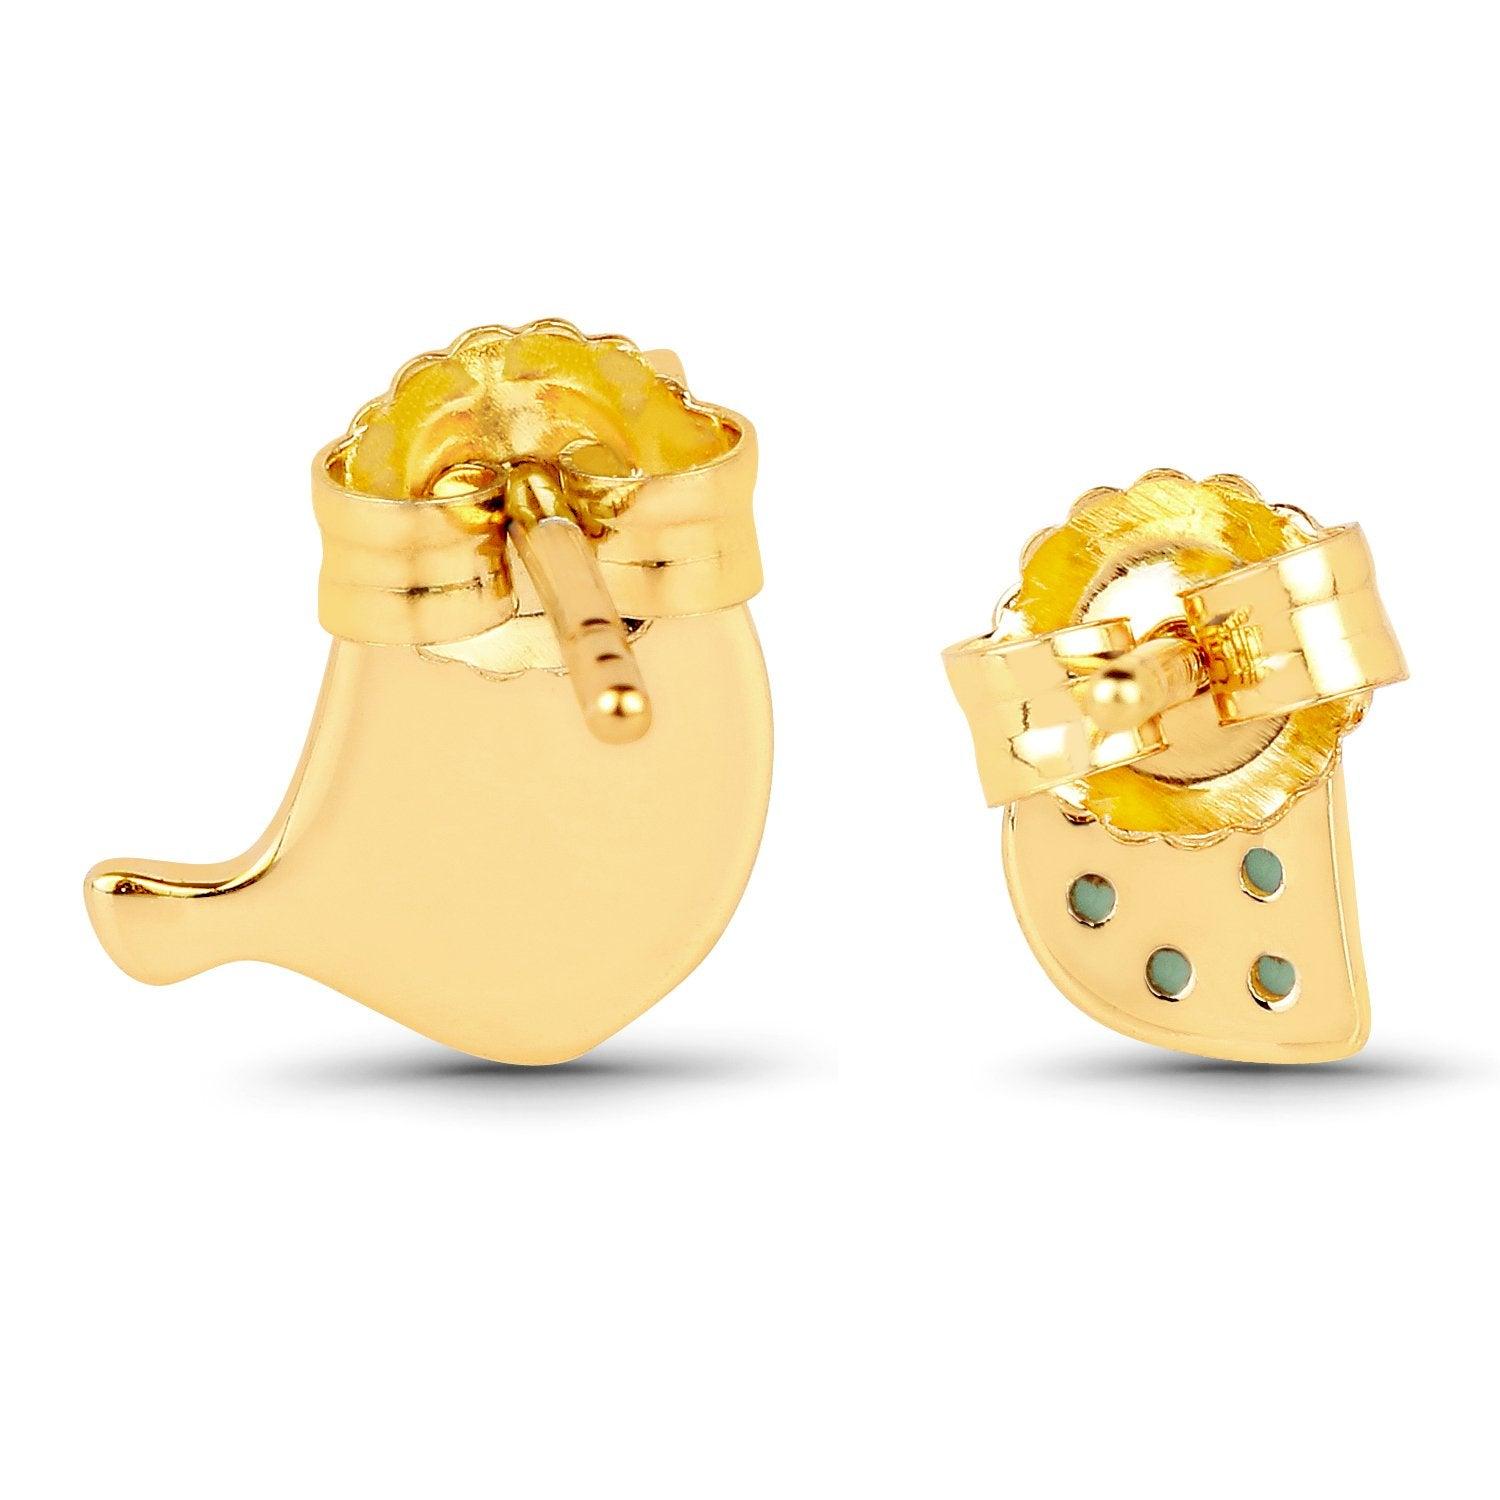 LoveHuang 0.17 Carats Genuine Emerald Bonding Birdie Earrings Solid .925 Sterling Silver With 18KT Yellow Gold Plating